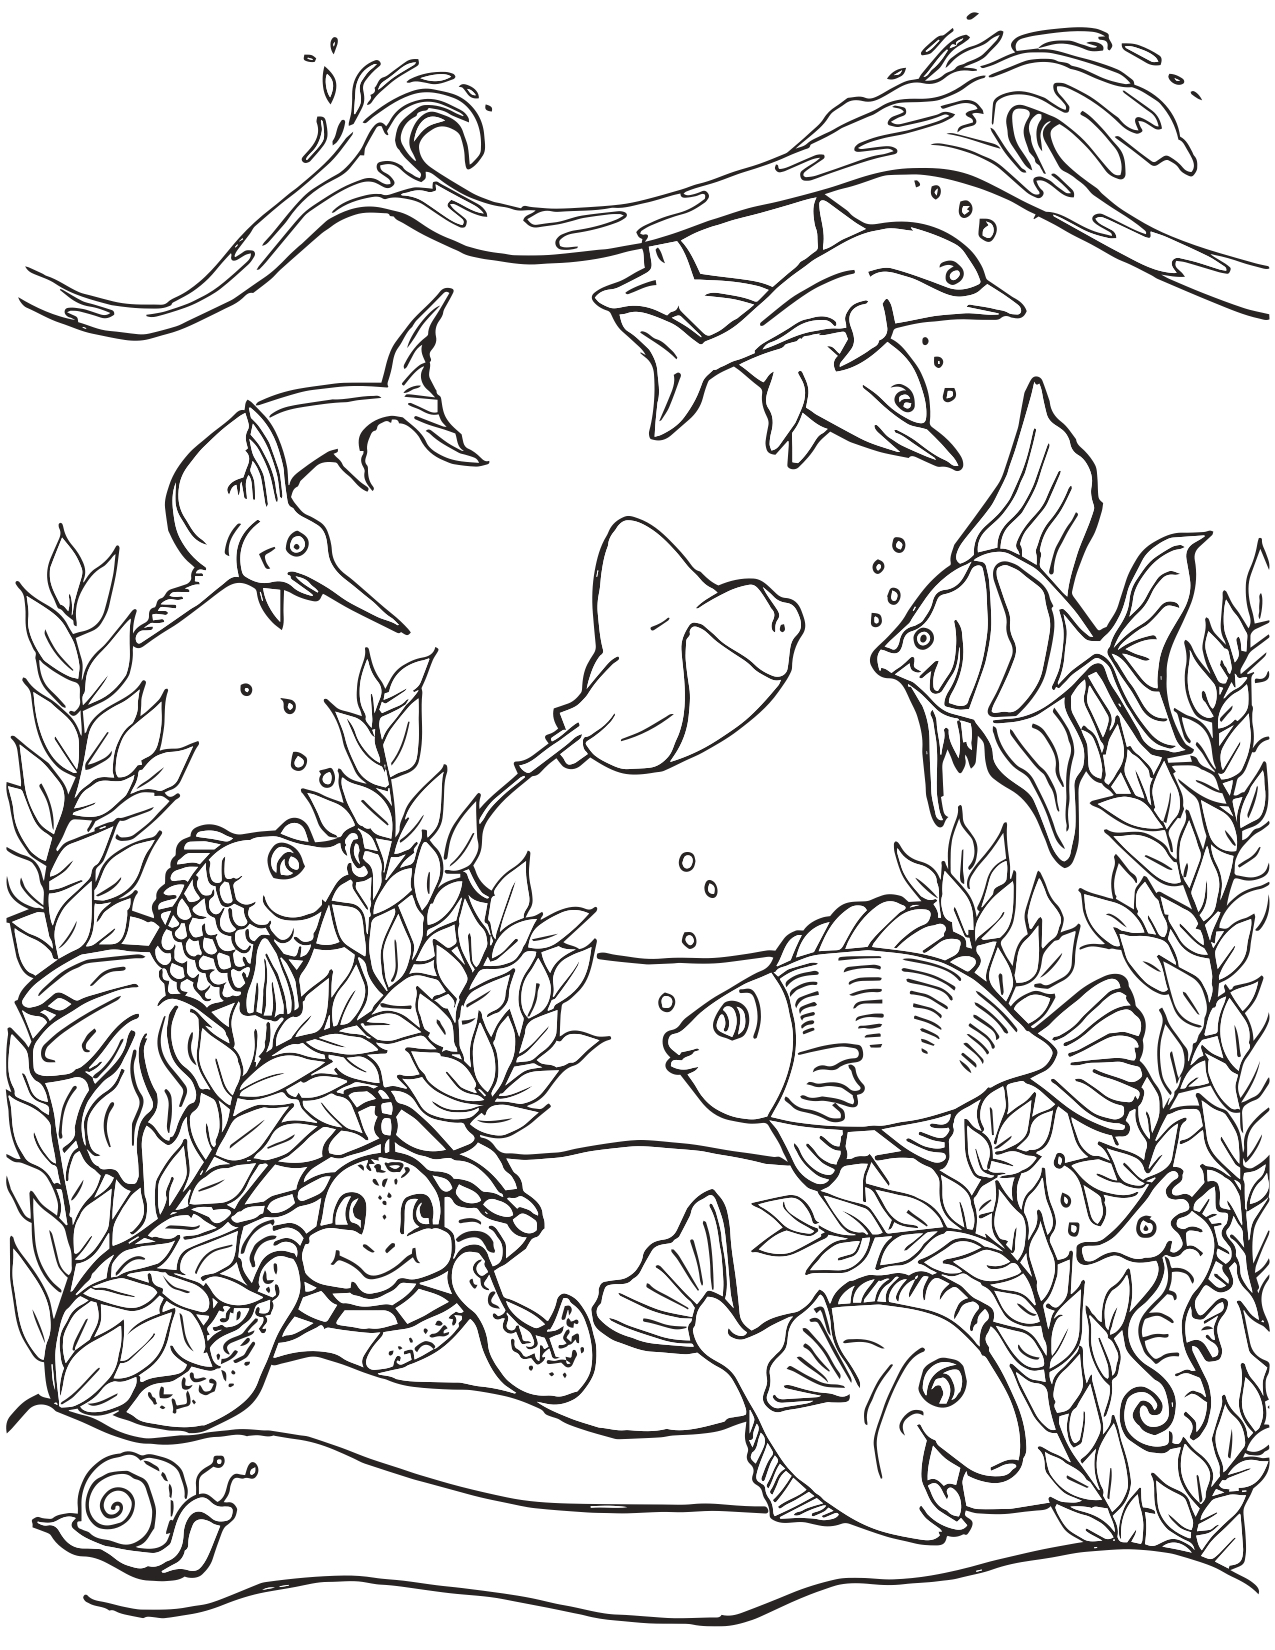 Life Under the Sea Coloring Page